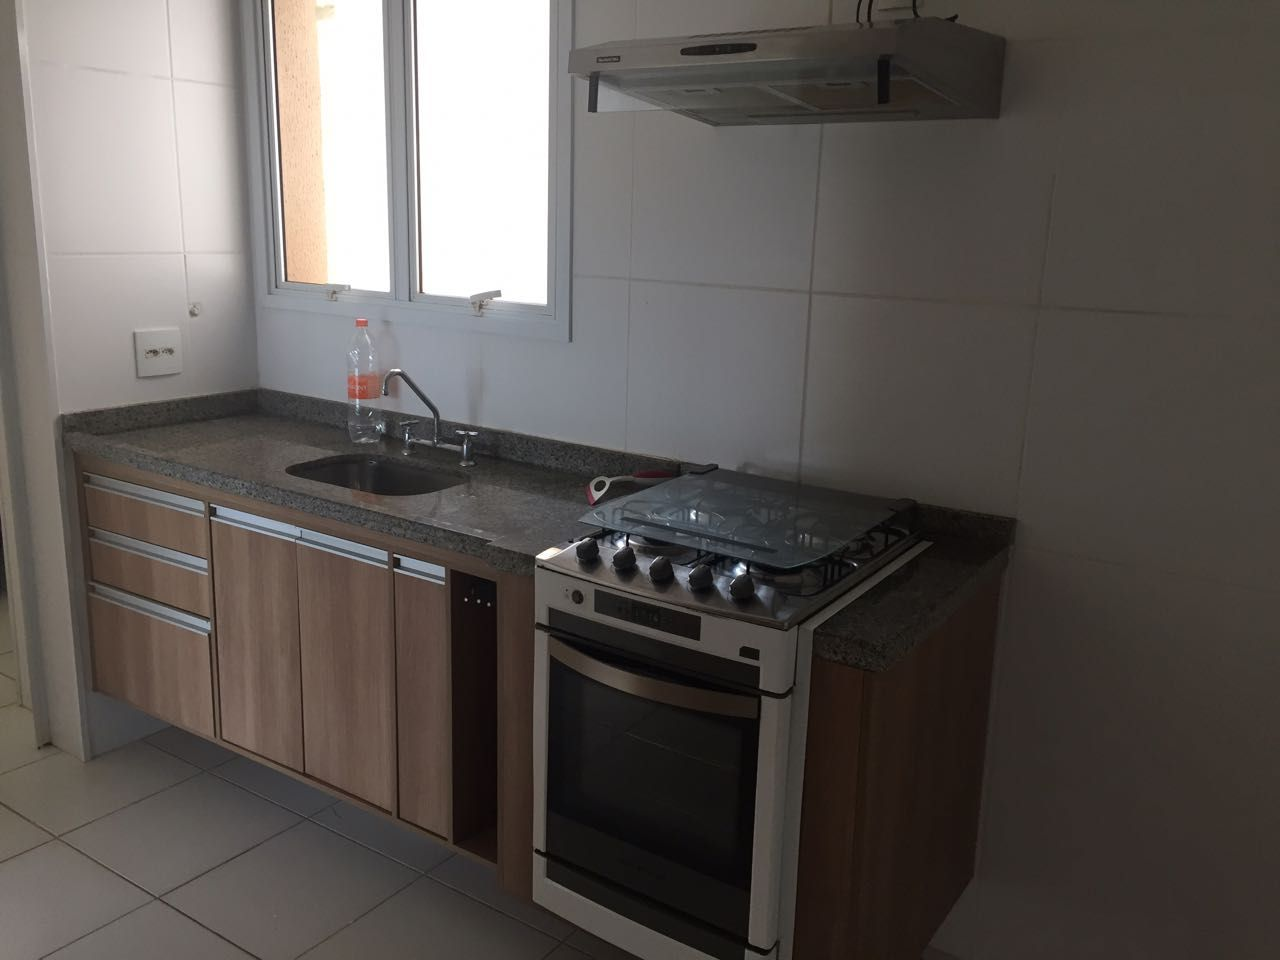 461 - Apto Vila do Golfe 104 m²